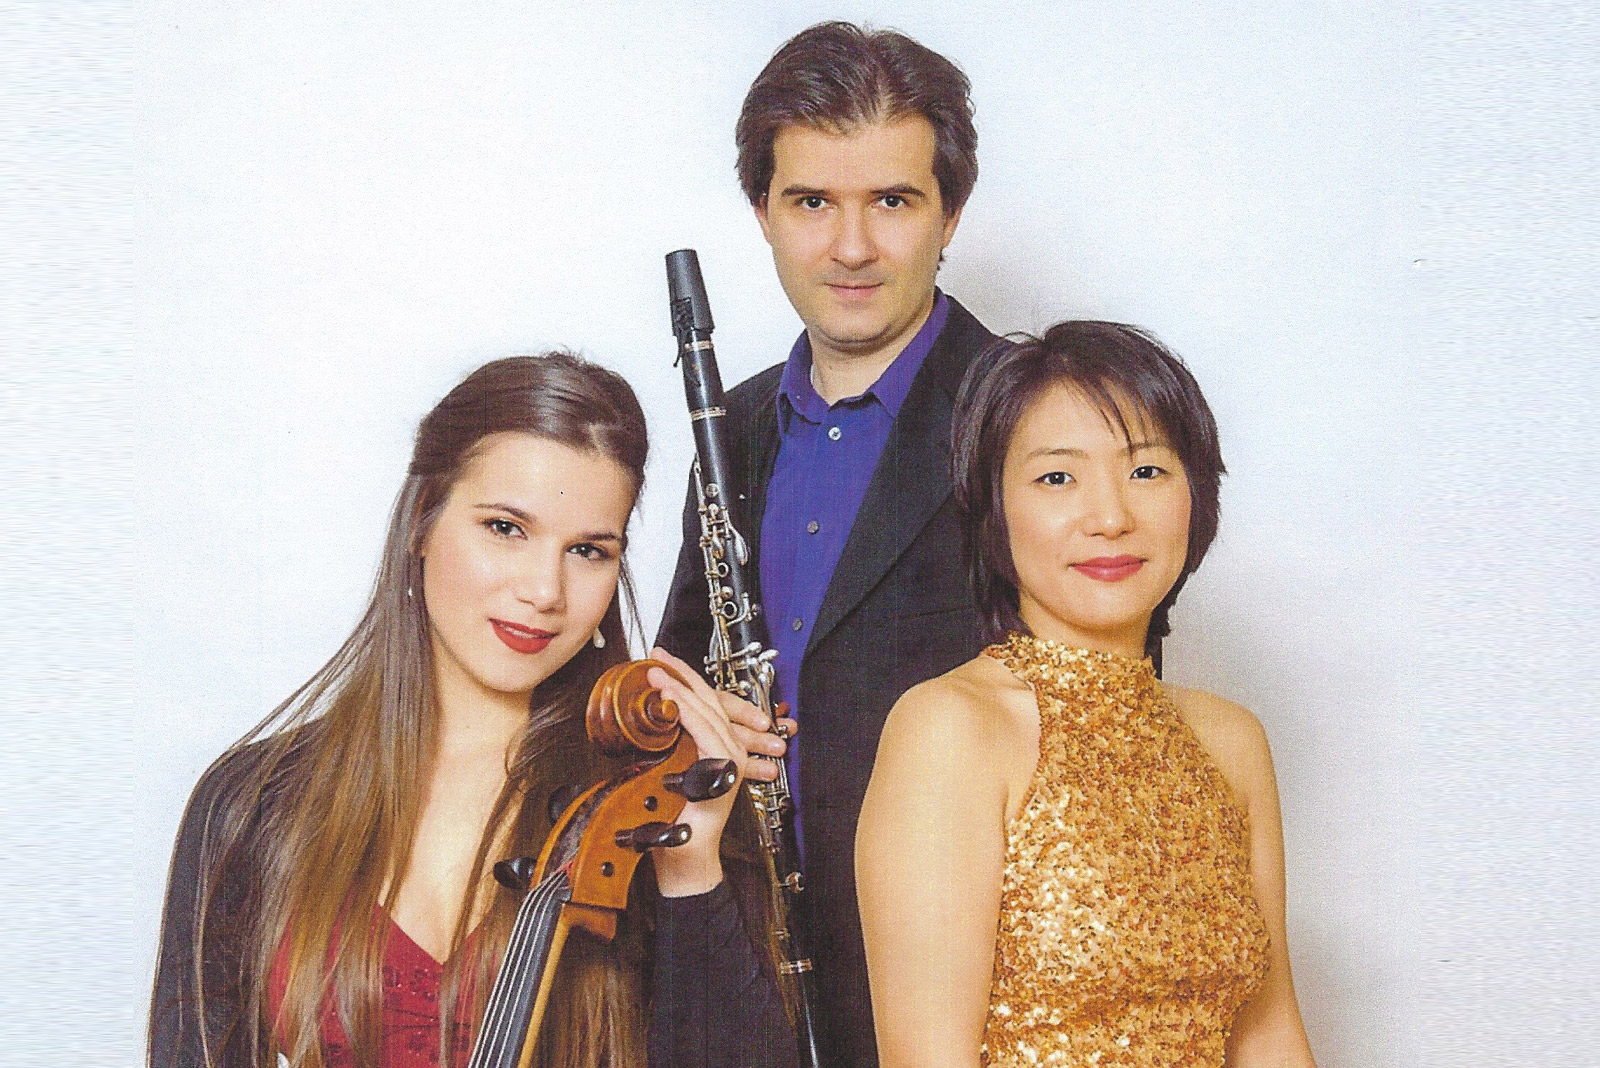 Trio Confero | Wednesday, April 1, 2020 | 7:30pm